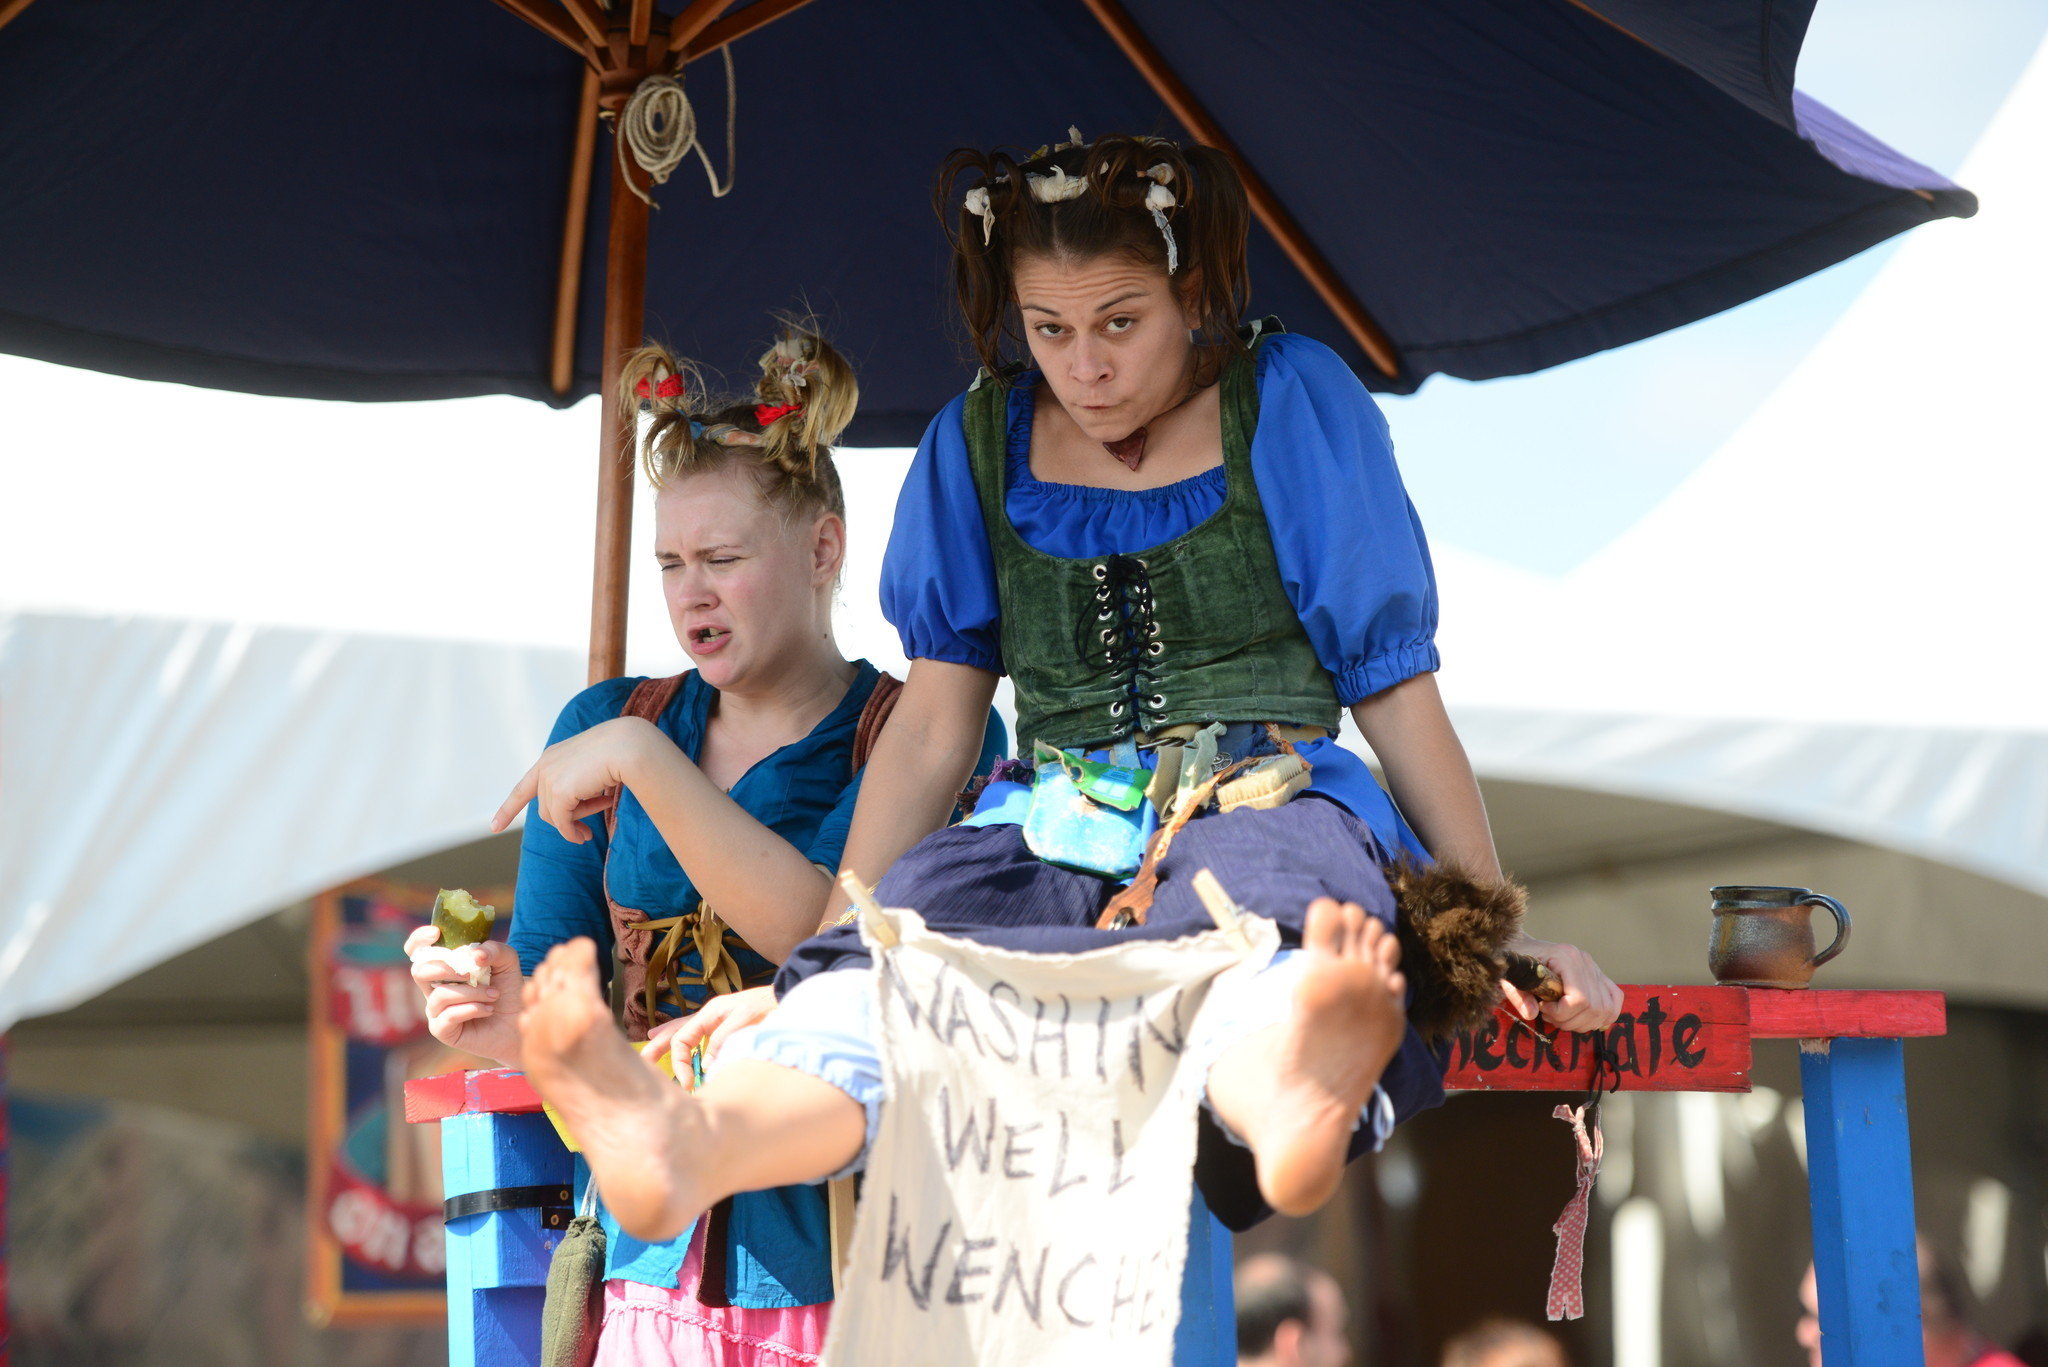 Renaissance Festival photos - Wenches